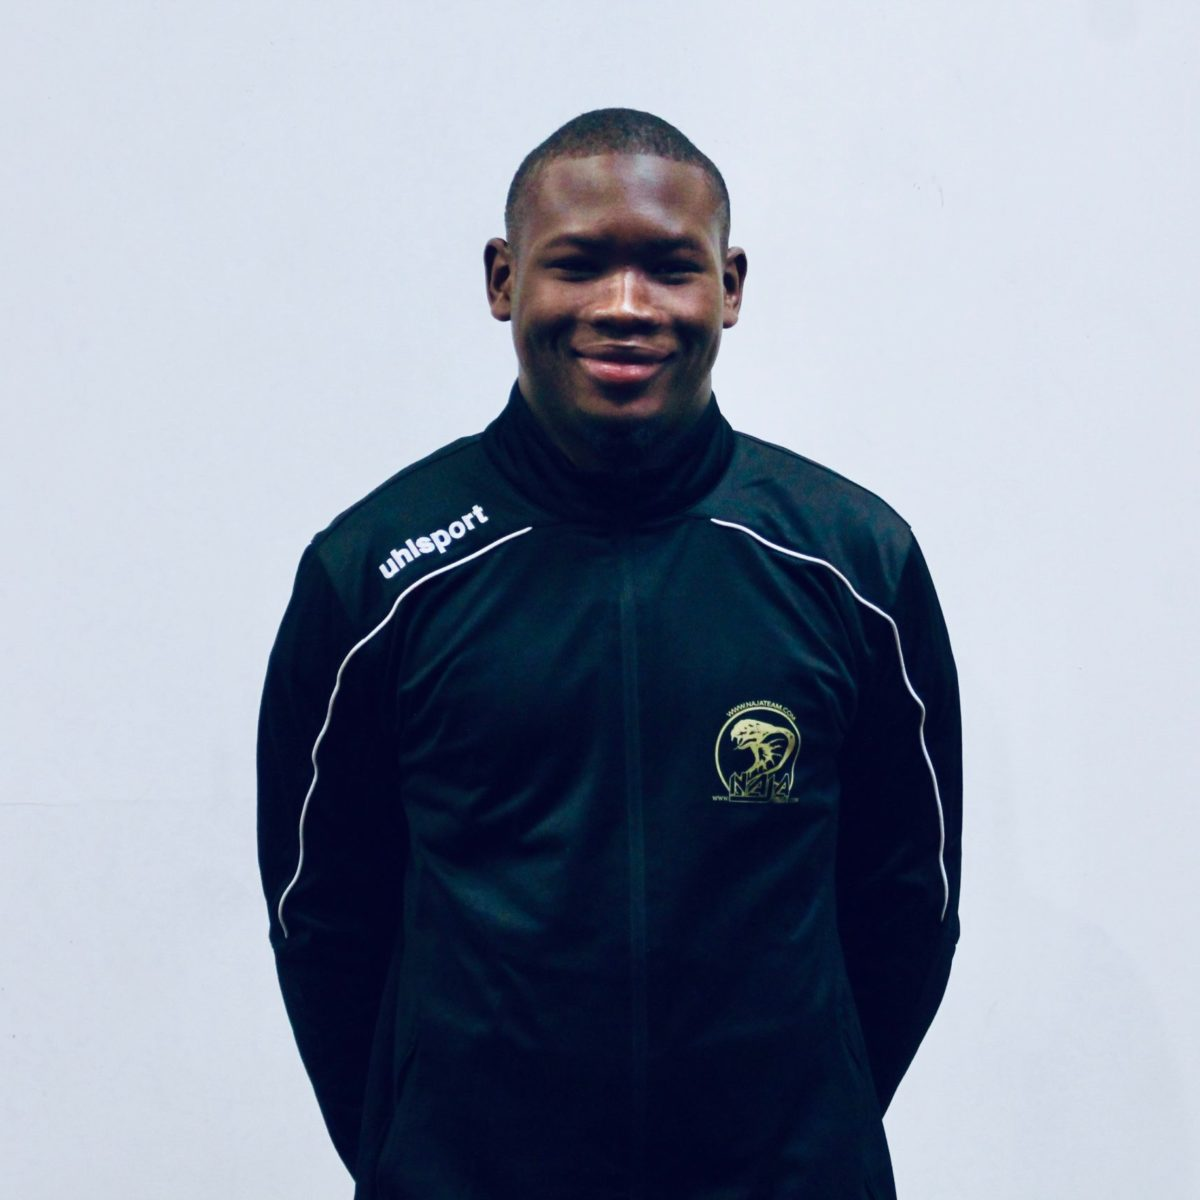 Abdoulay - Coach de Boxe Thai - Naja Team